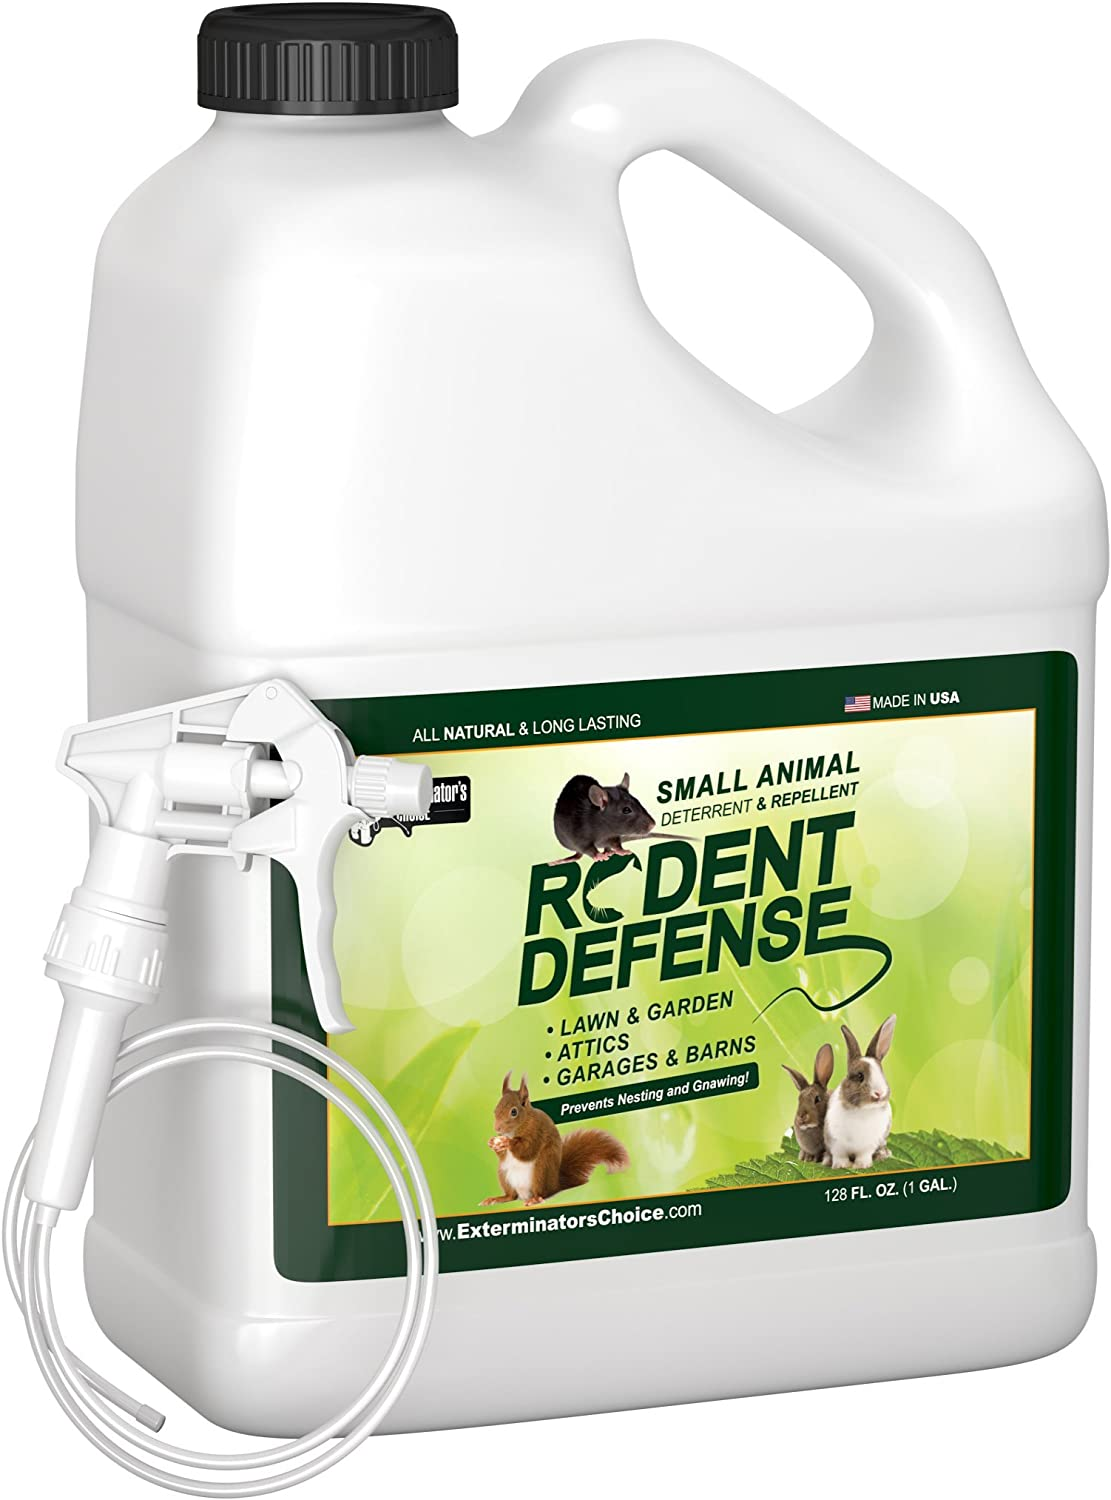 Exterminators Choice Small Rodent Defense | 1 Gallon | Small Rodent Repellent Spray | Easy Pest Control for Mice and Rats | Uses Peppermint Oil to Keep Them Away